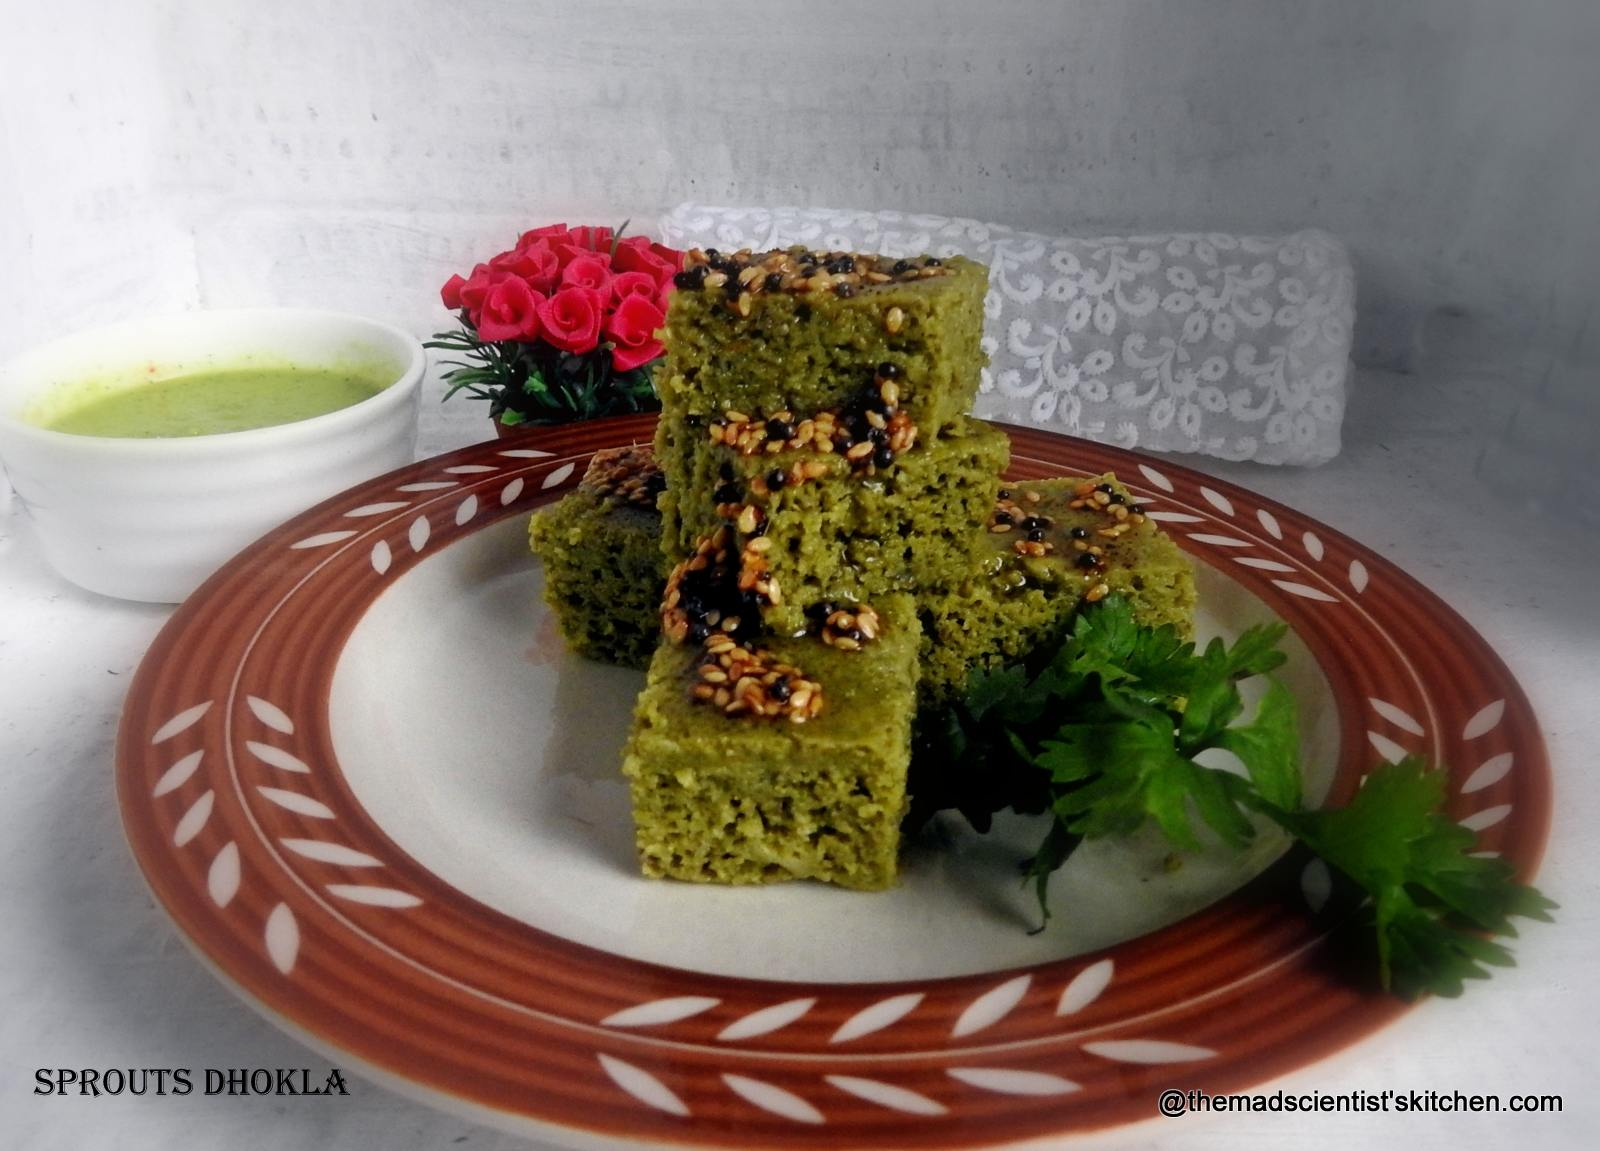 Protein Rich Sprouts Dhokla